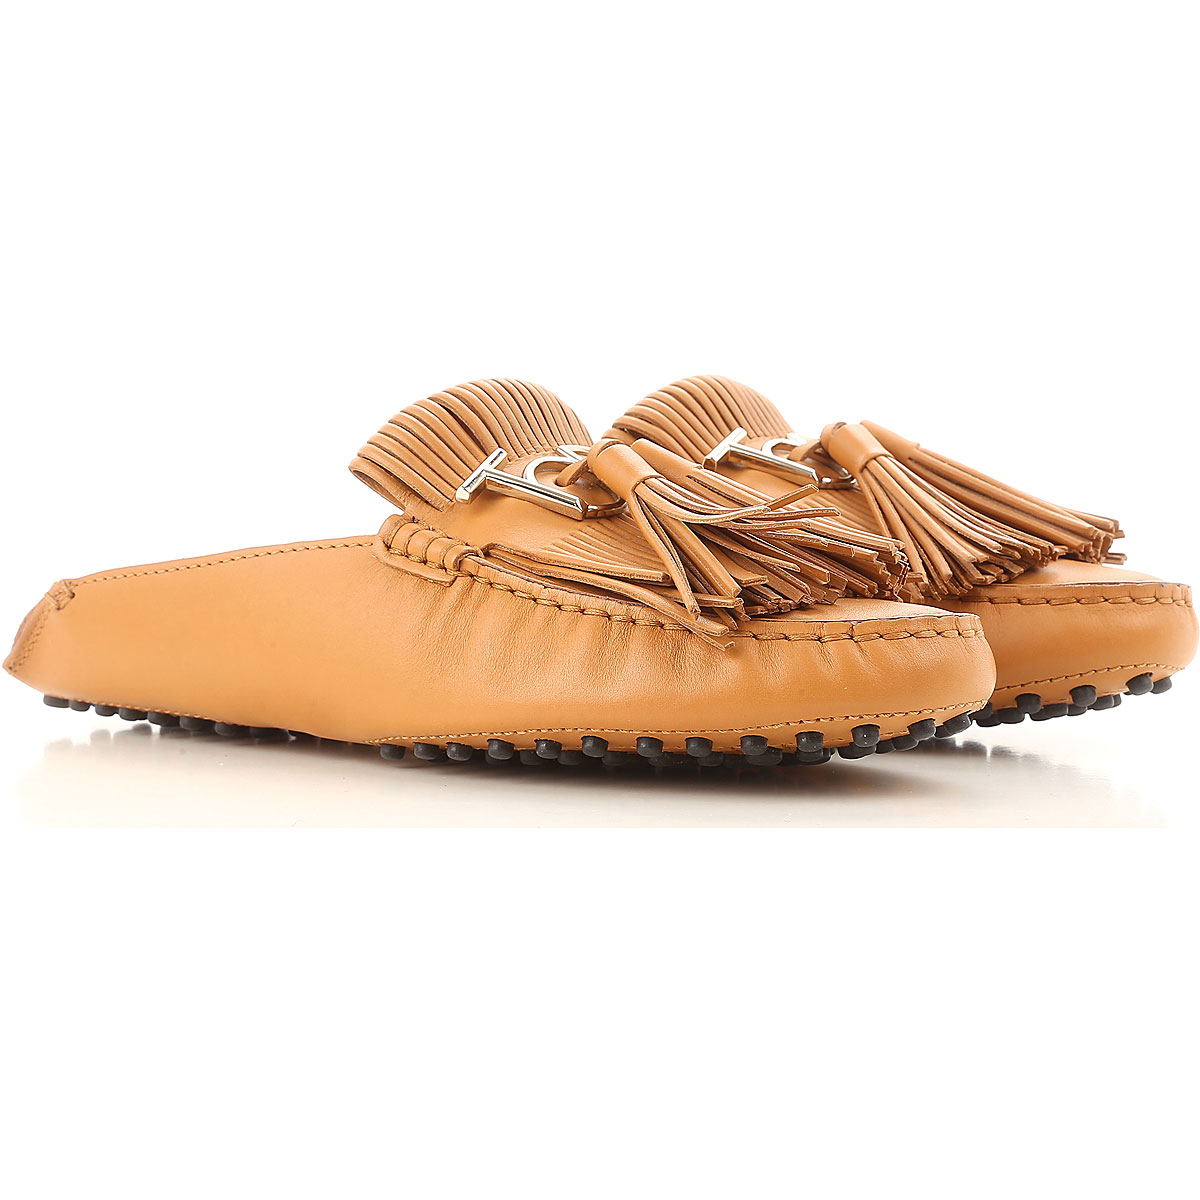 Tods Loafers for Women Camel USA - GOOFASH